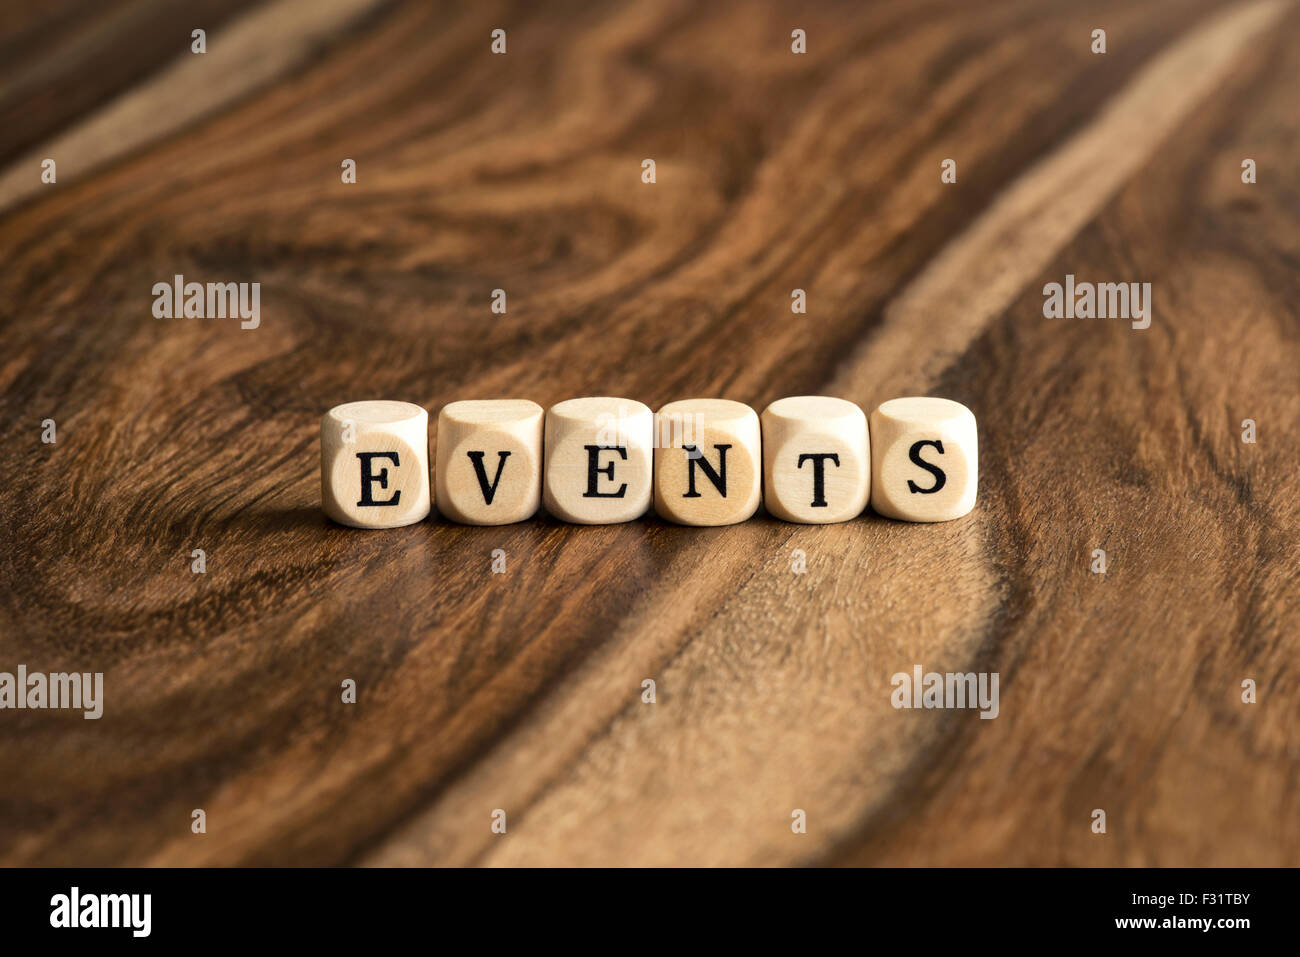 EVENTS word background on wood blocks - Stock Image